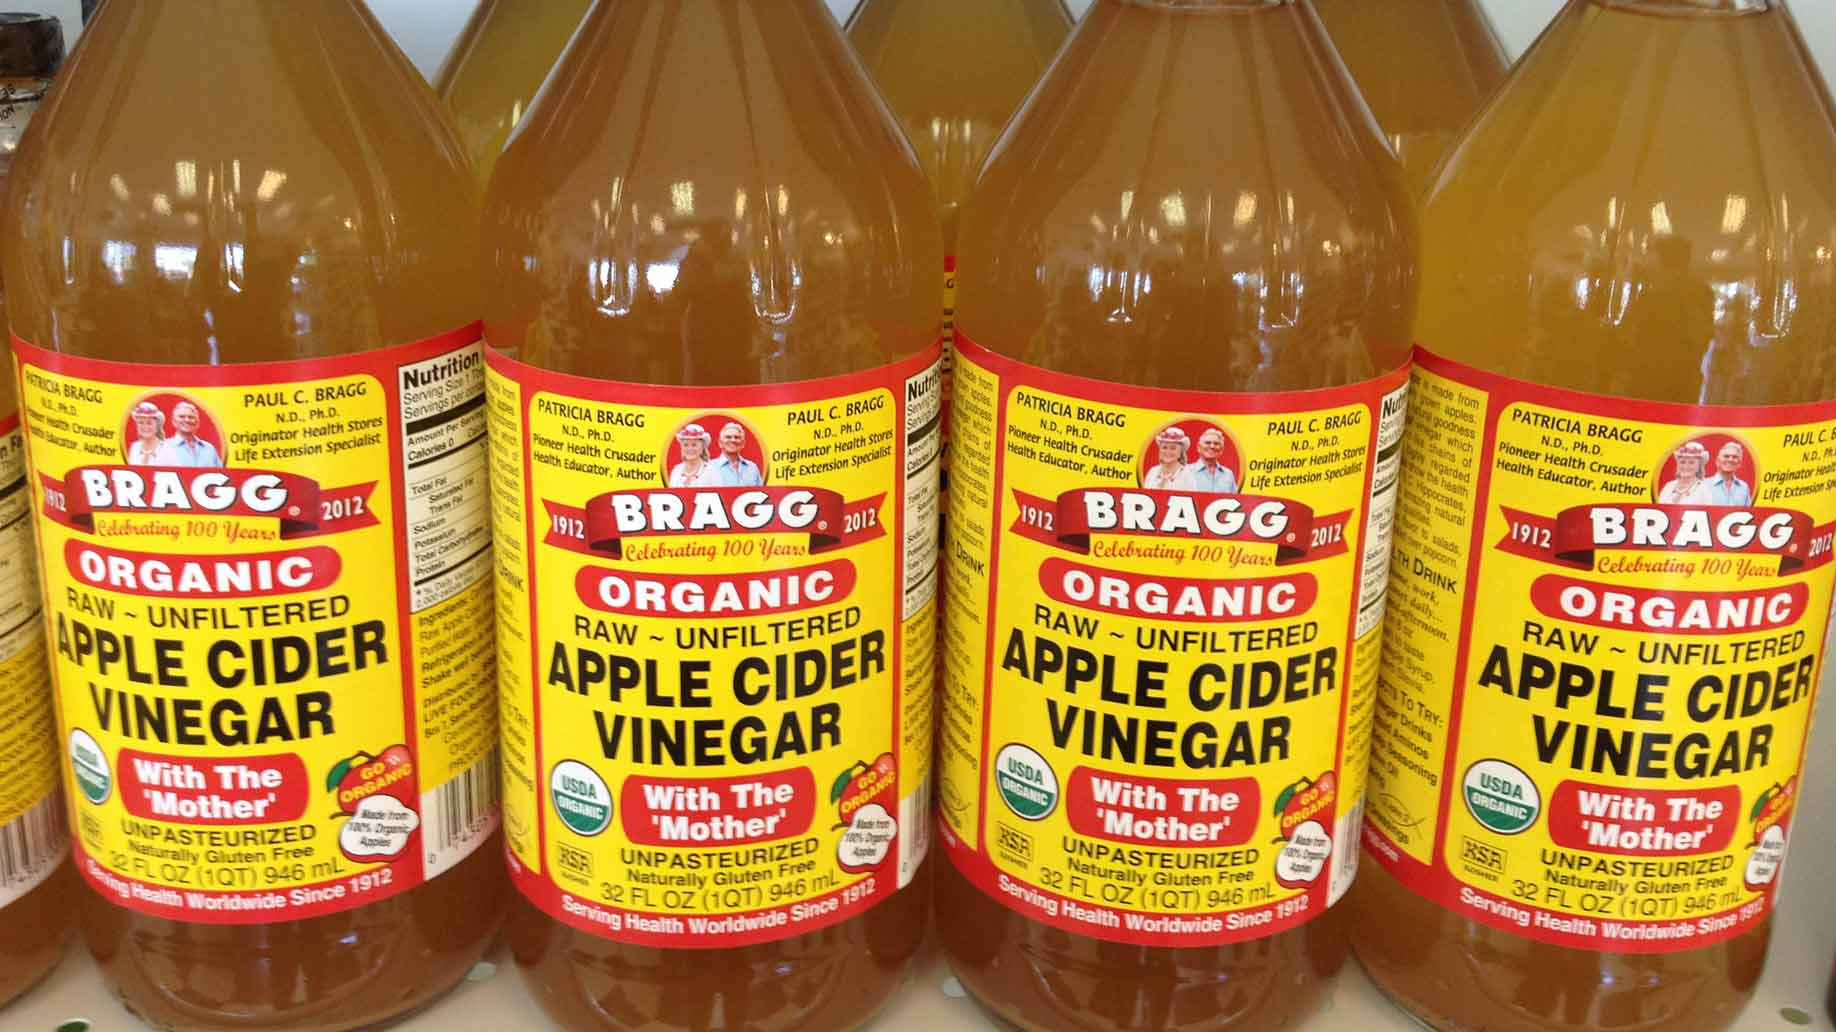 "bragg organic raw unfiltered apple cider vinegar in glass jar with the ""mother"""